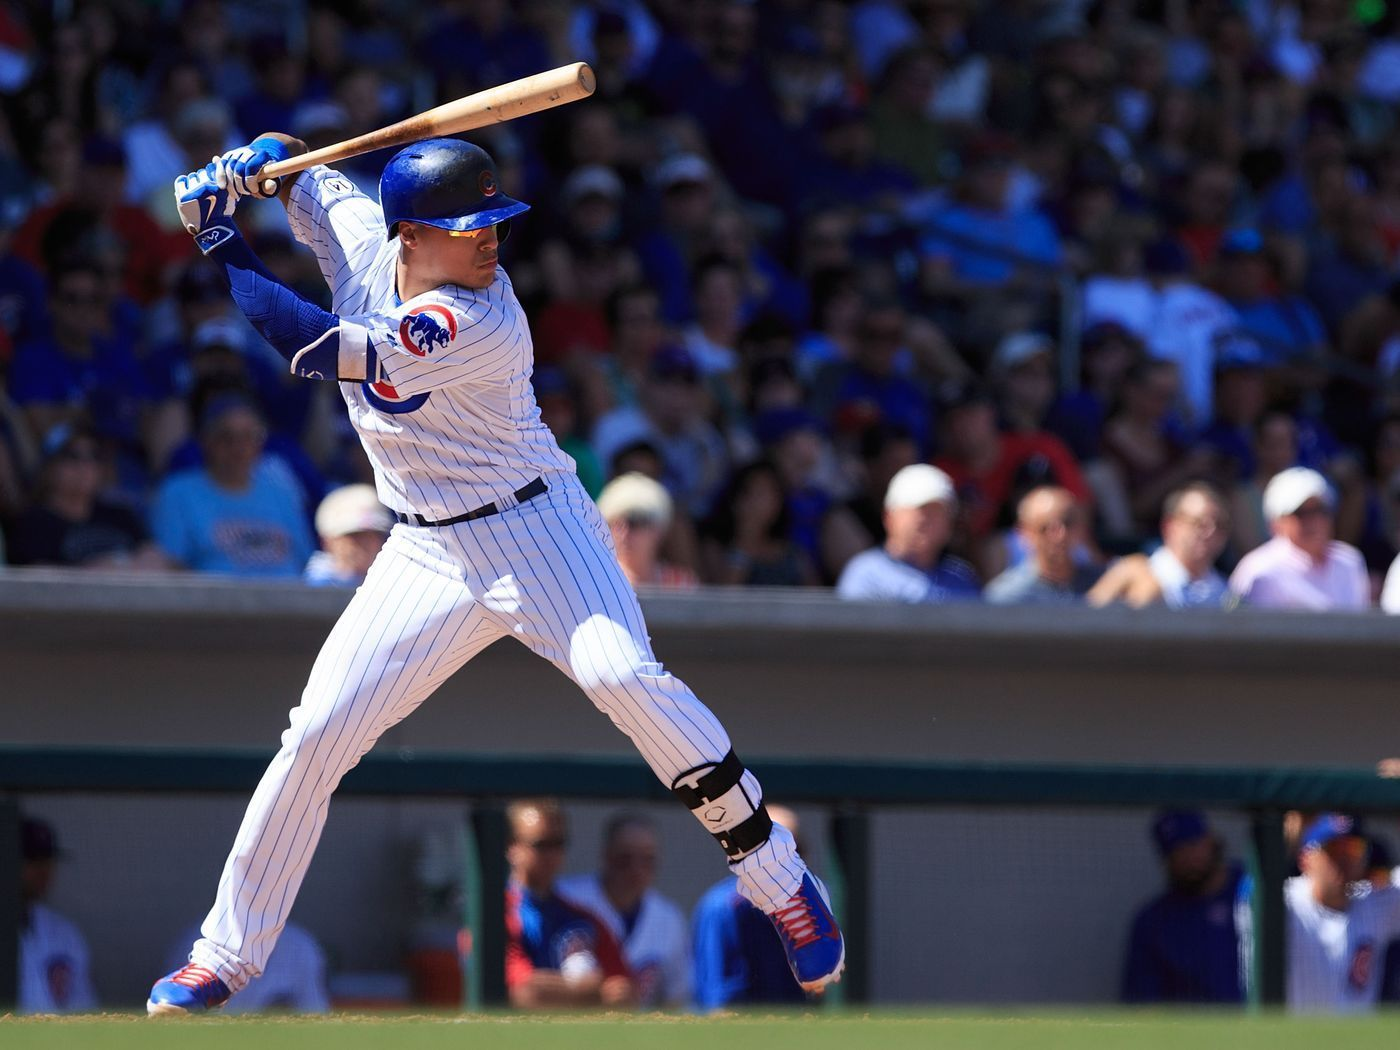 Javier Baez Wallpapers Top Free Javier Baez Backgrounds Wallpaperaccess All Star Chicago Cubs Top Free